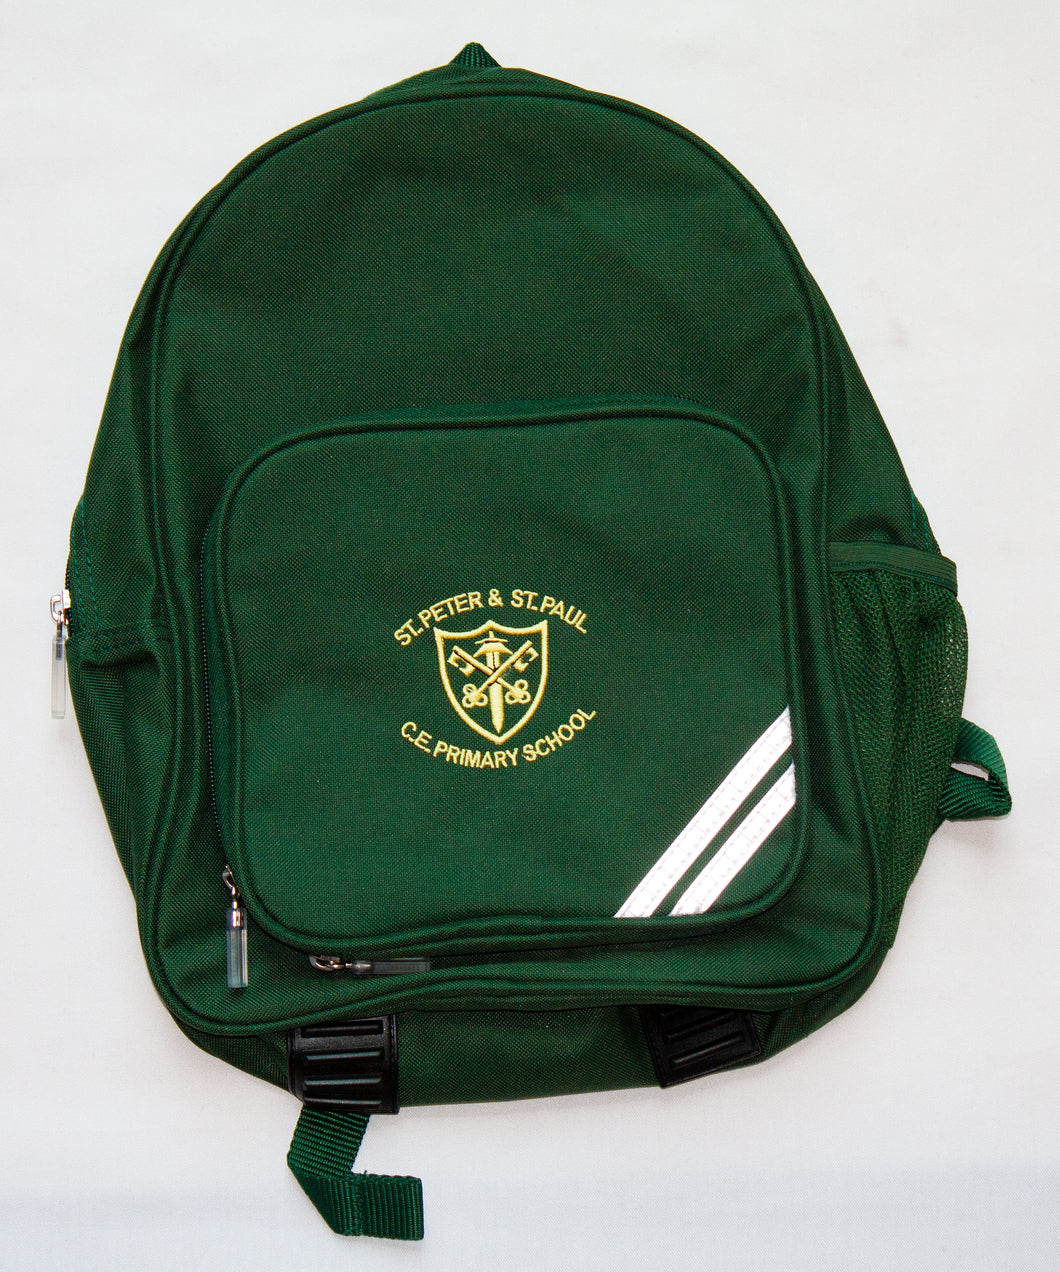 St. Peter & Paul's Infant Backpack